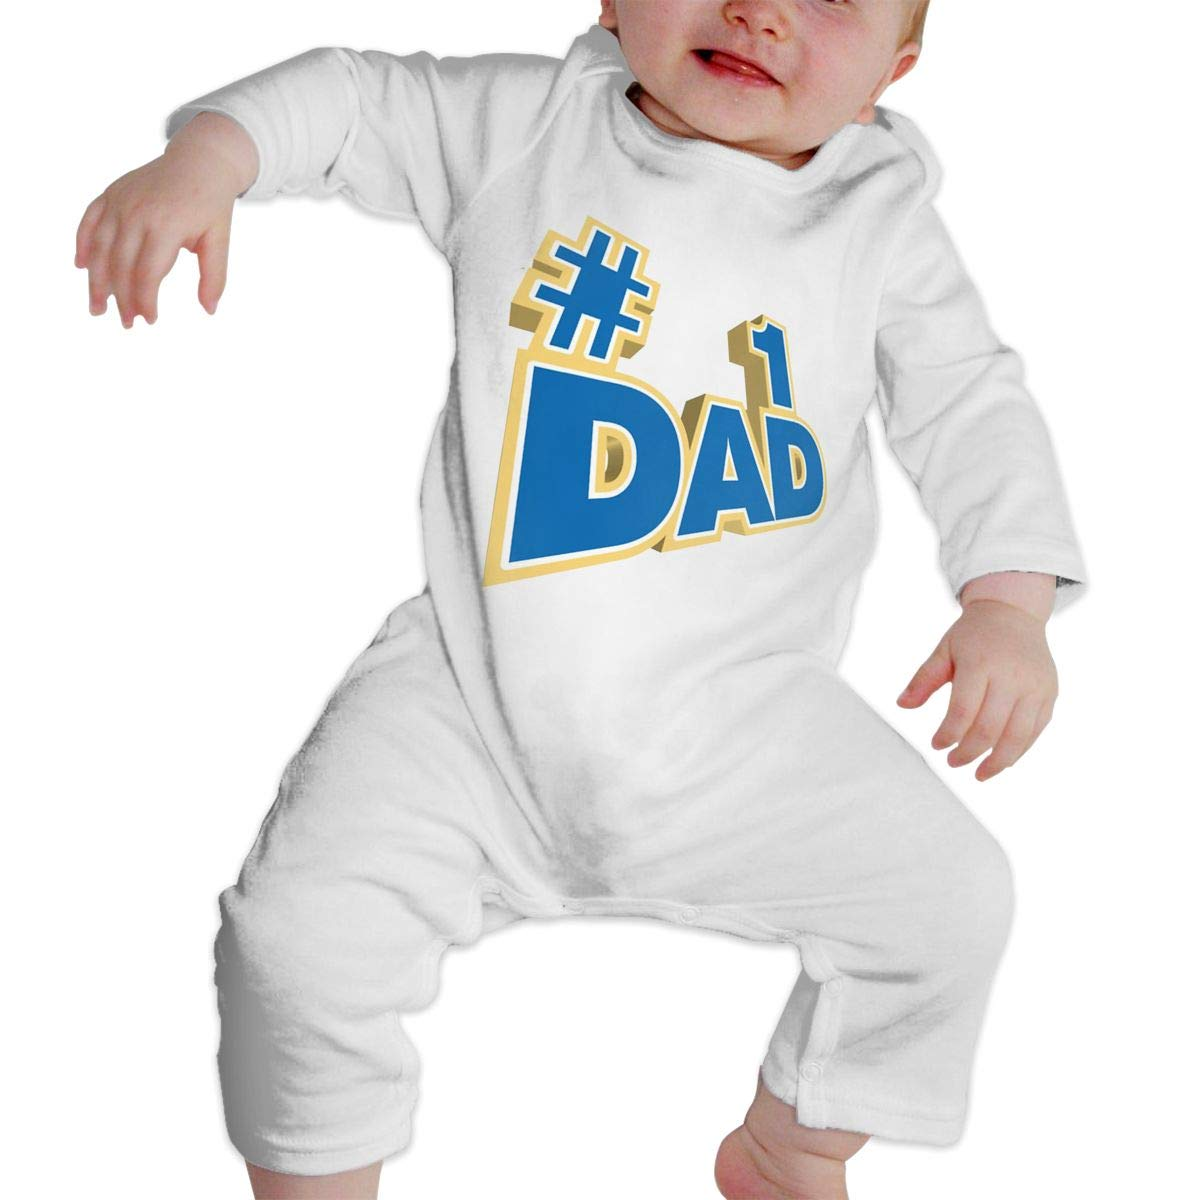 CharmKAT Baby Boy Girl Round Neck Long-Sleeve Solid Color Climbing Clothes #1 Dad Jumpsuits Sleepwear